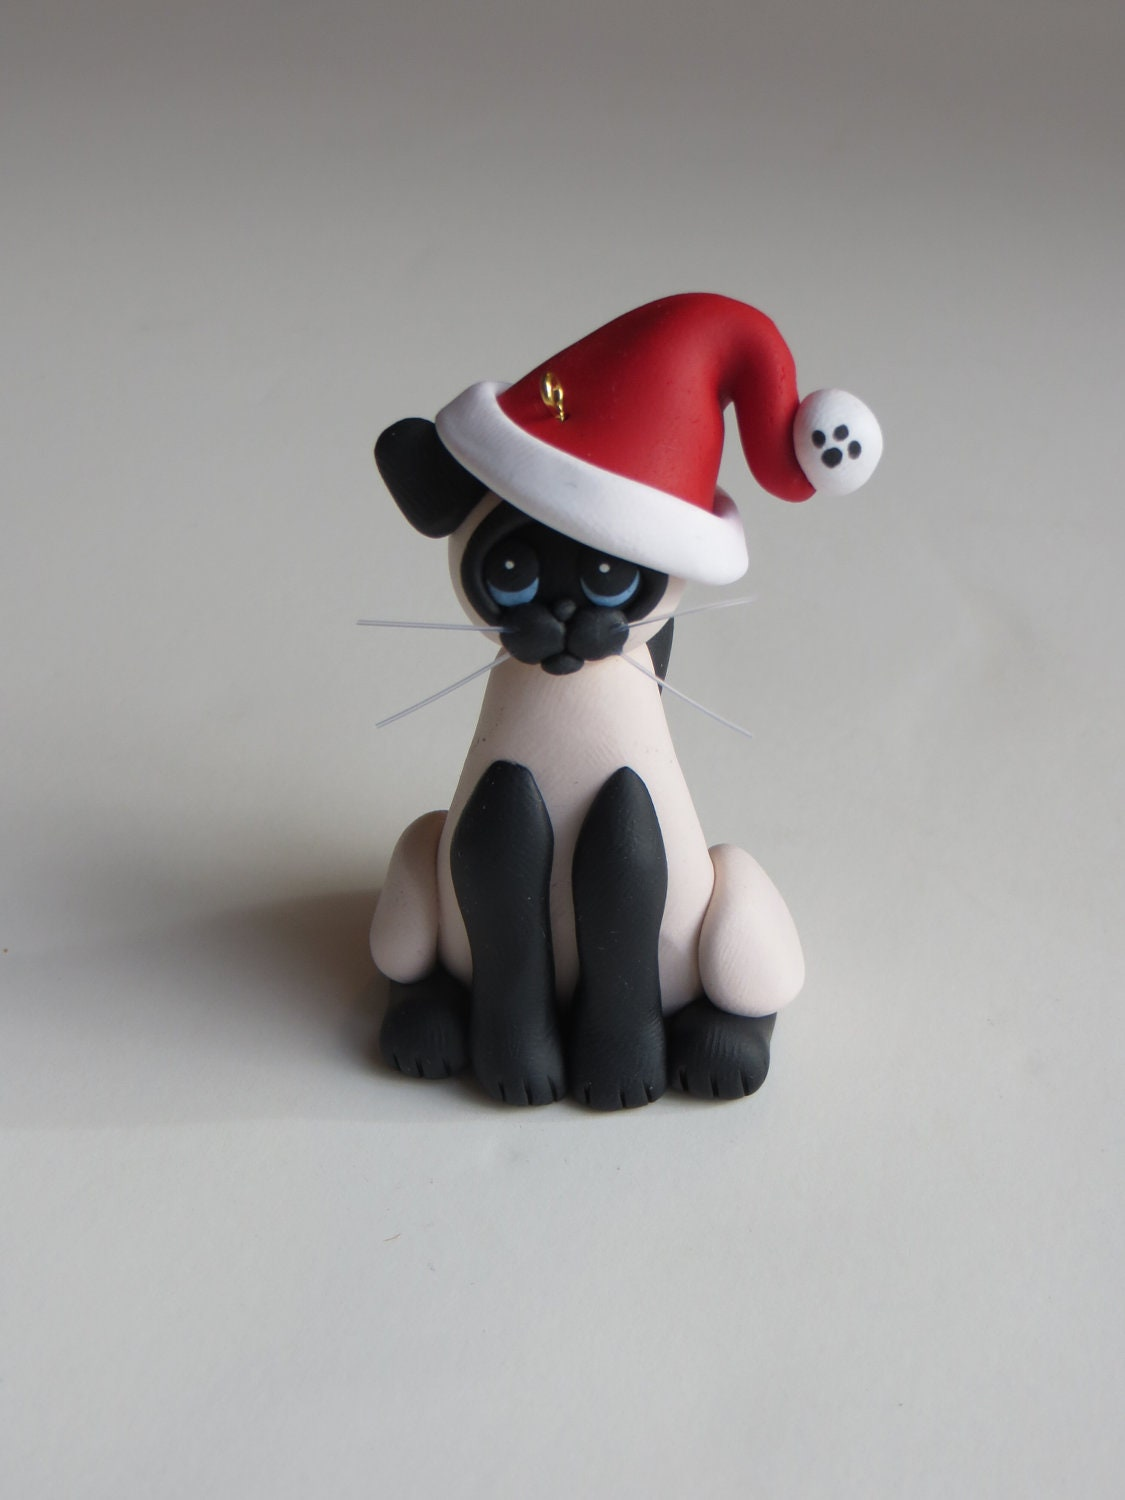 Christmas ornament polymer clay siamese cat figure seal point